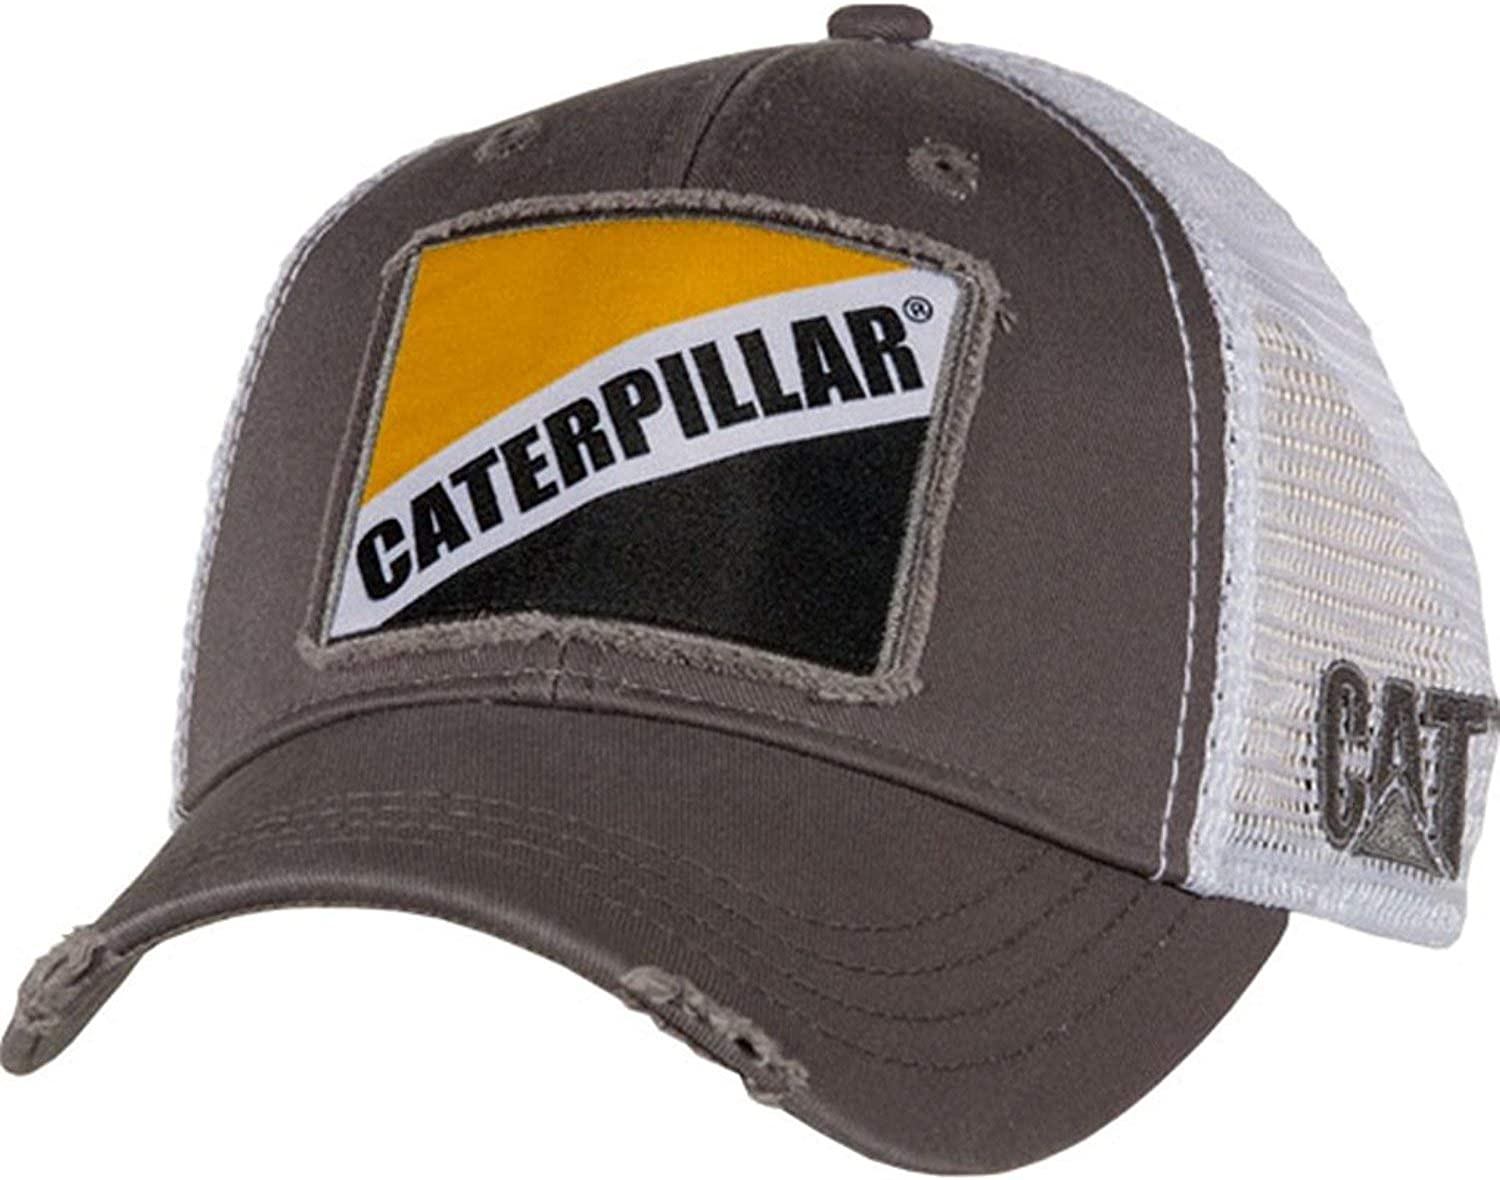 Caterpillar CAT Long-awaited Equipment Worn Looking Snapback Whit Manufacturer regenerated product Bro Vintage